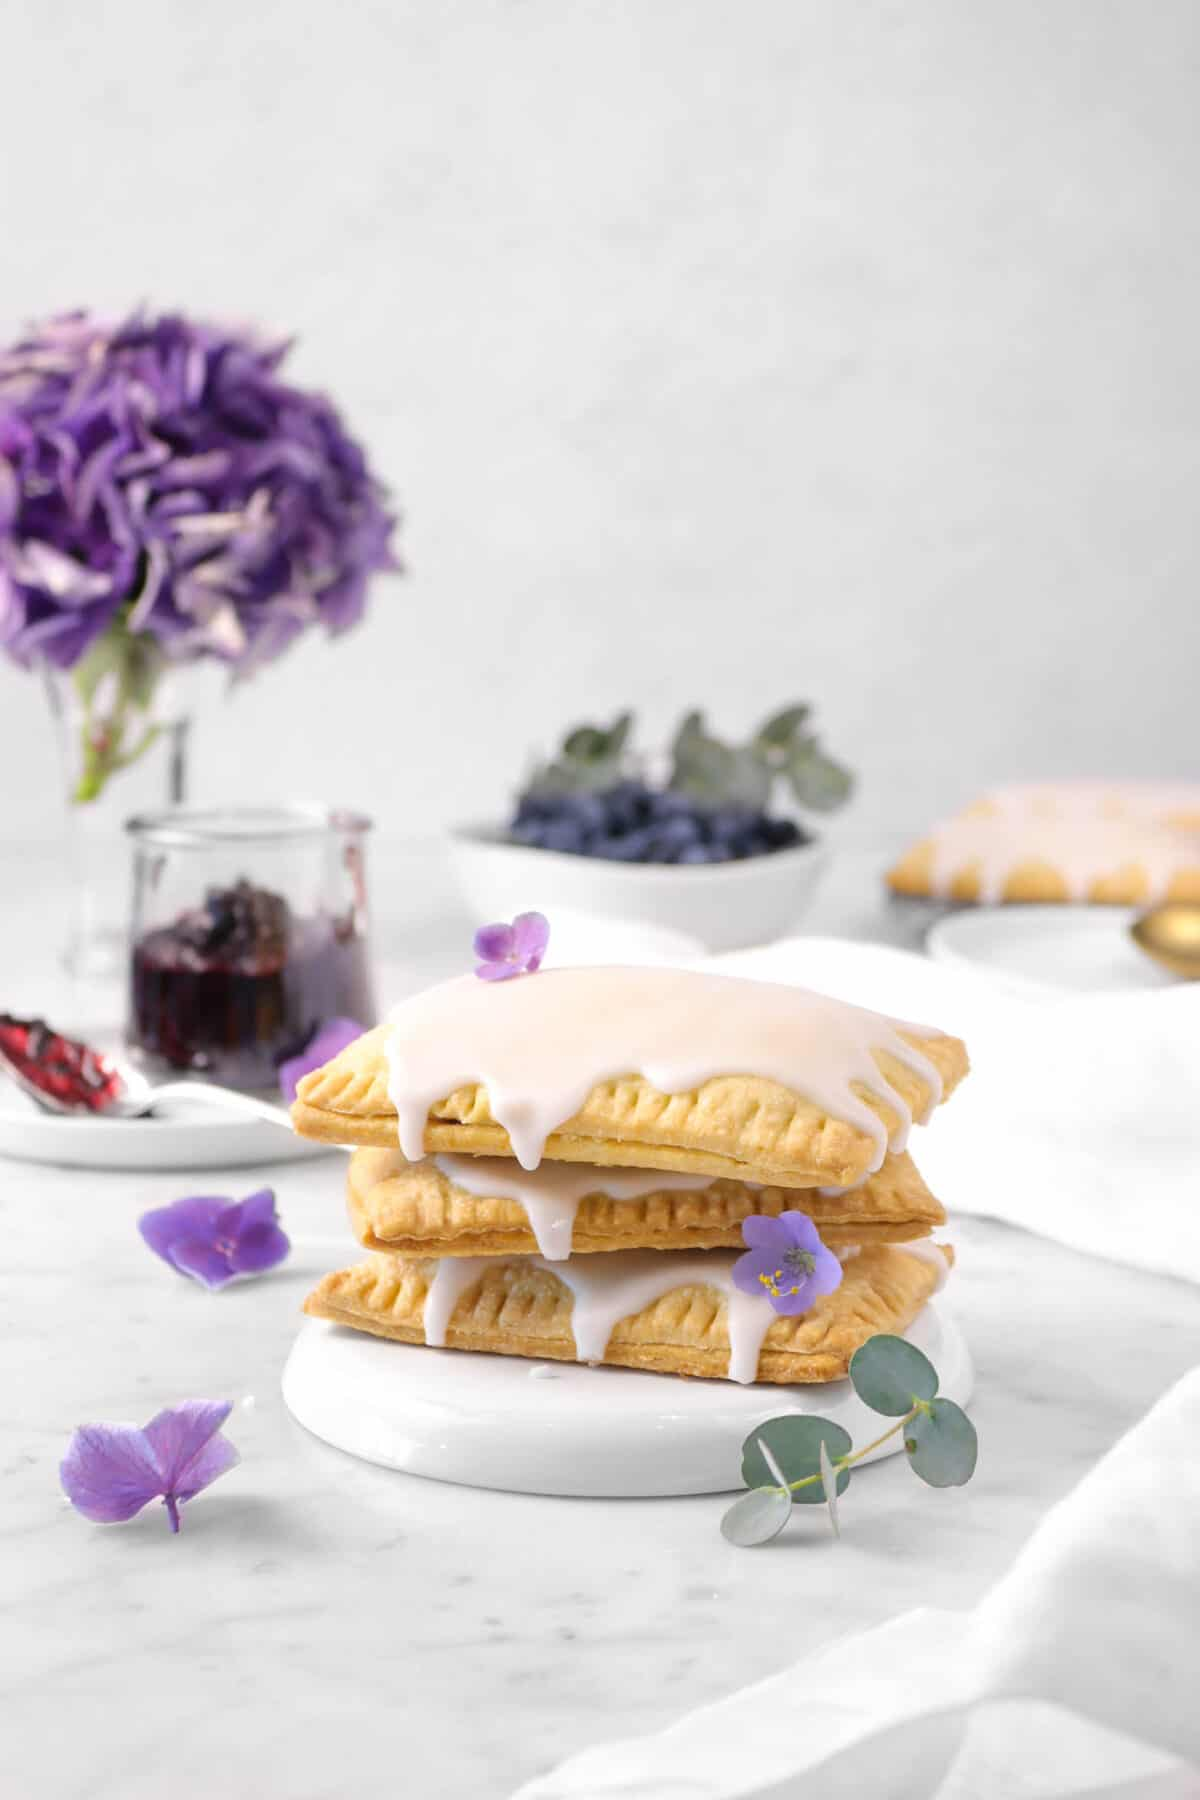 three pop tarts stacked with purple flowers, a napkin, a jar of jam, eucalyptus, a bowl of blueberries, and more pop tarts behind